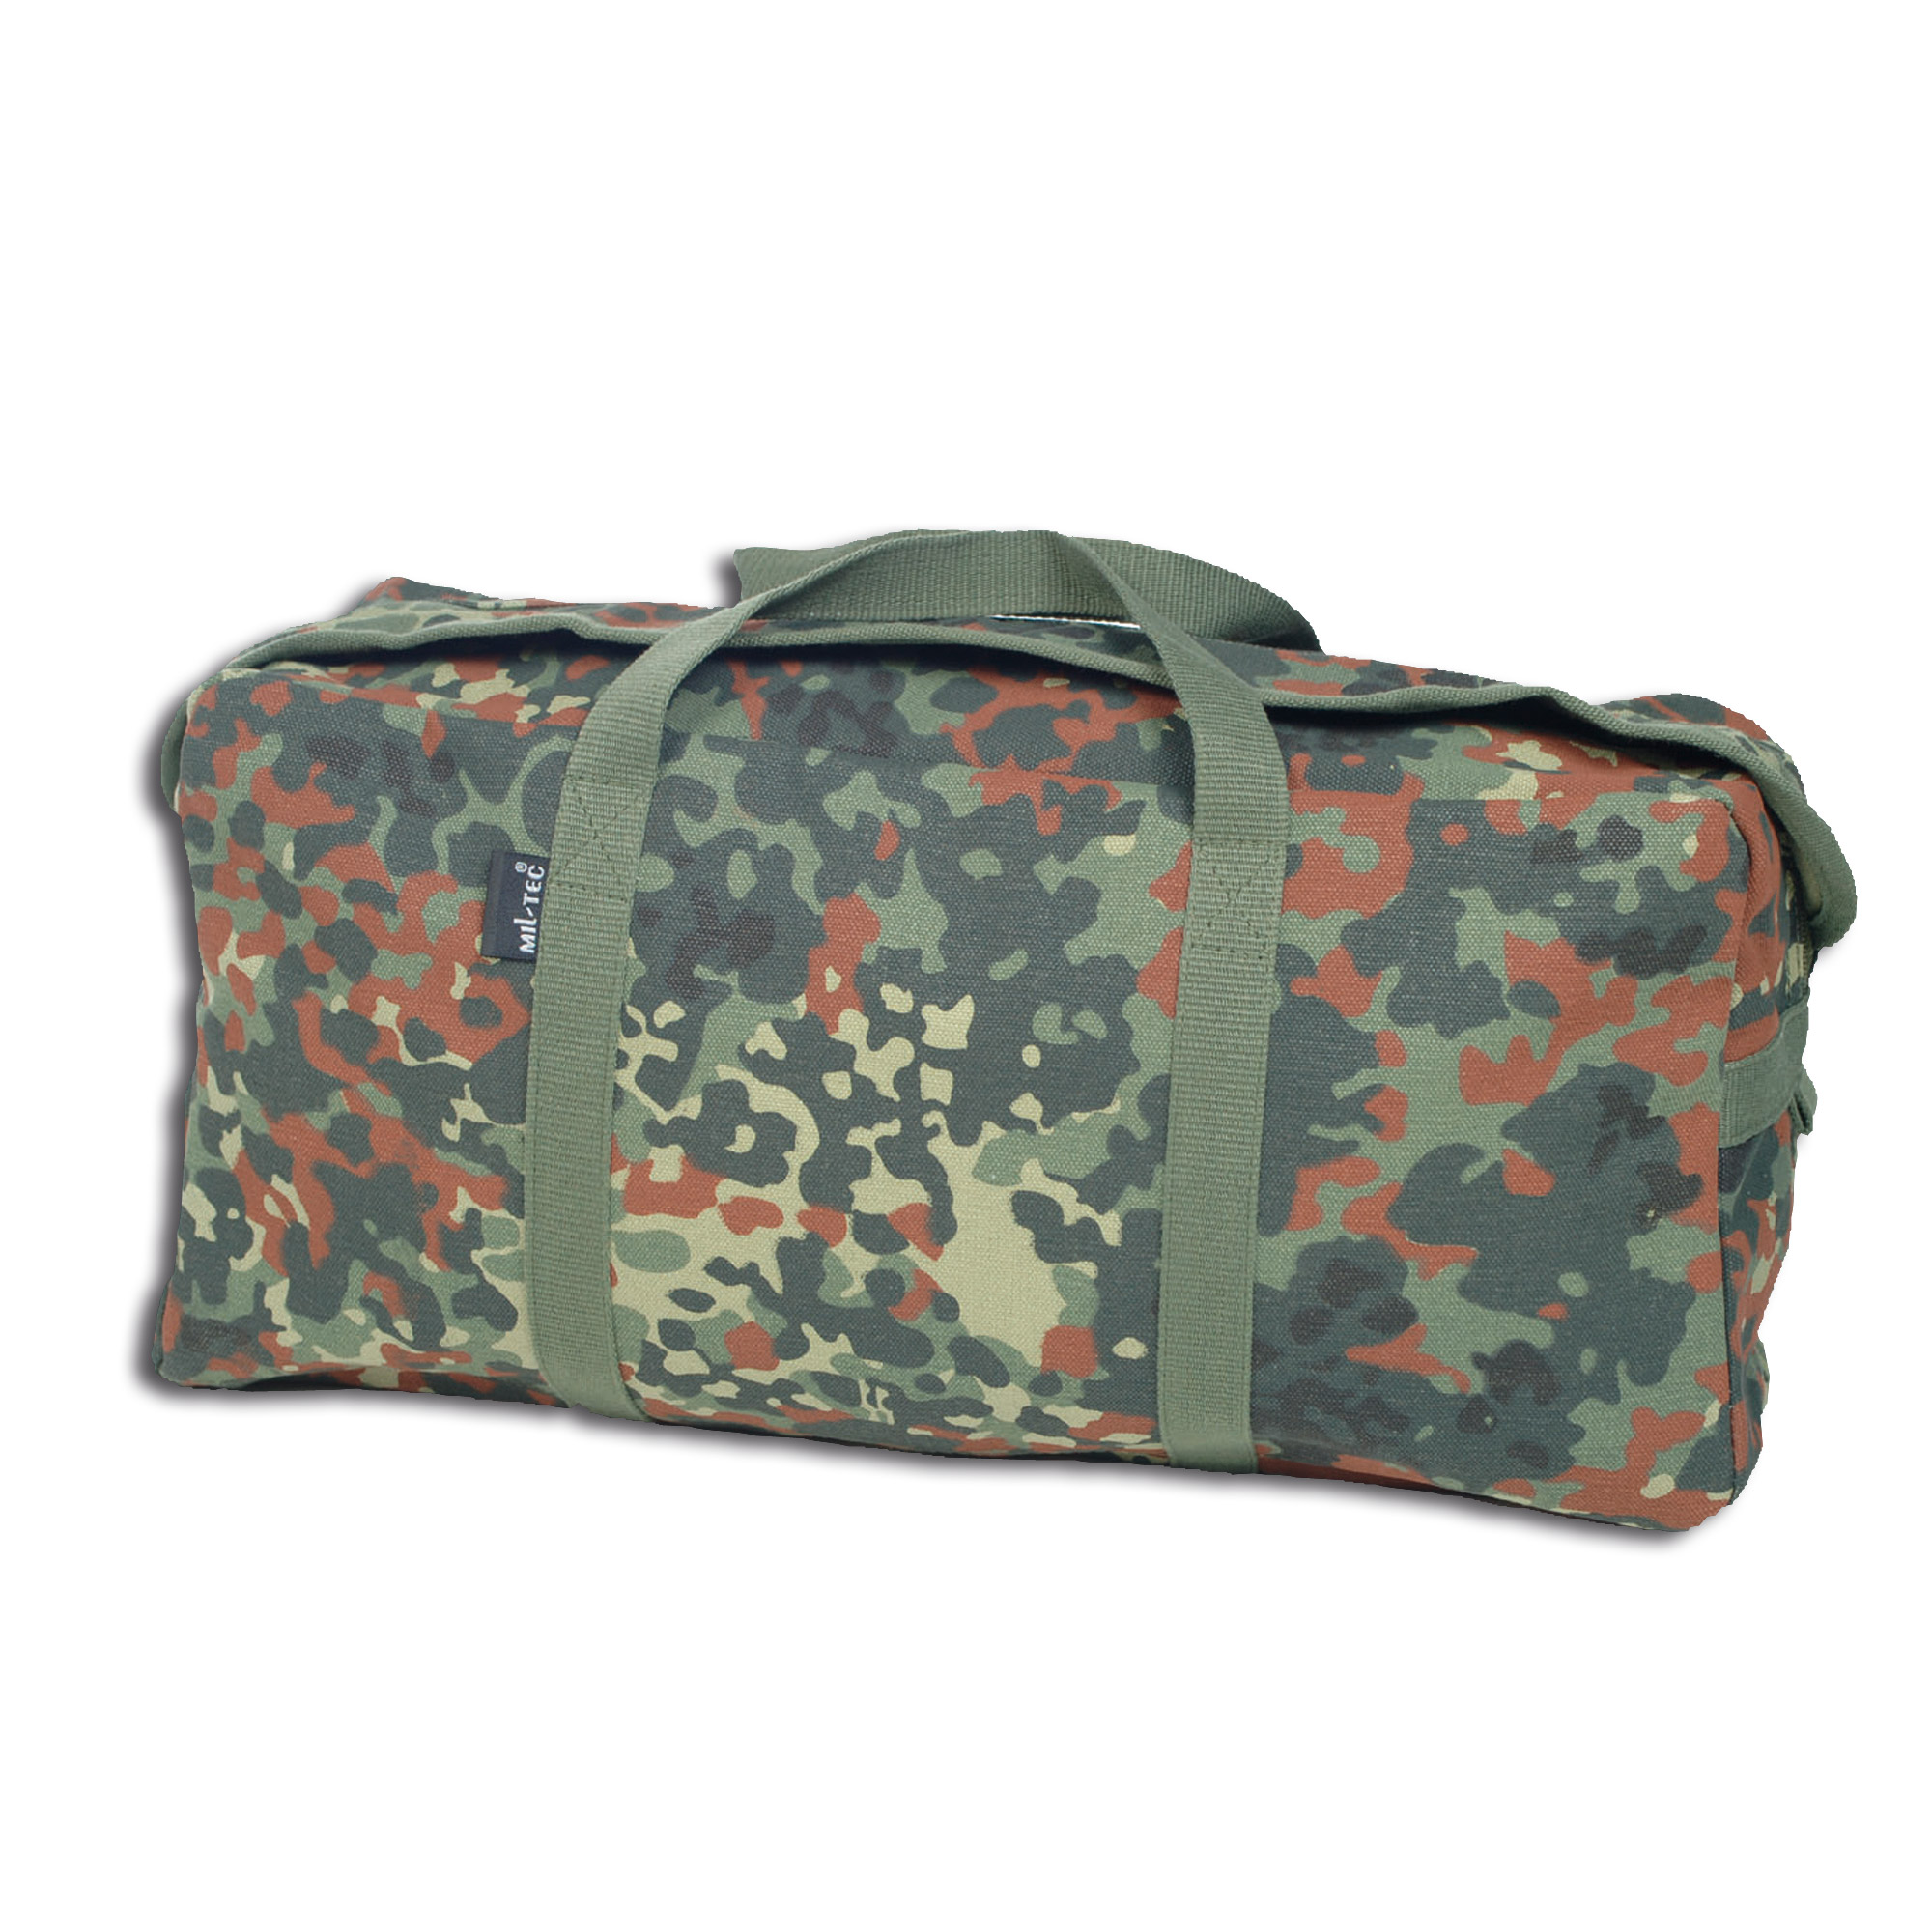 Sac Canvas moyen flecktarn